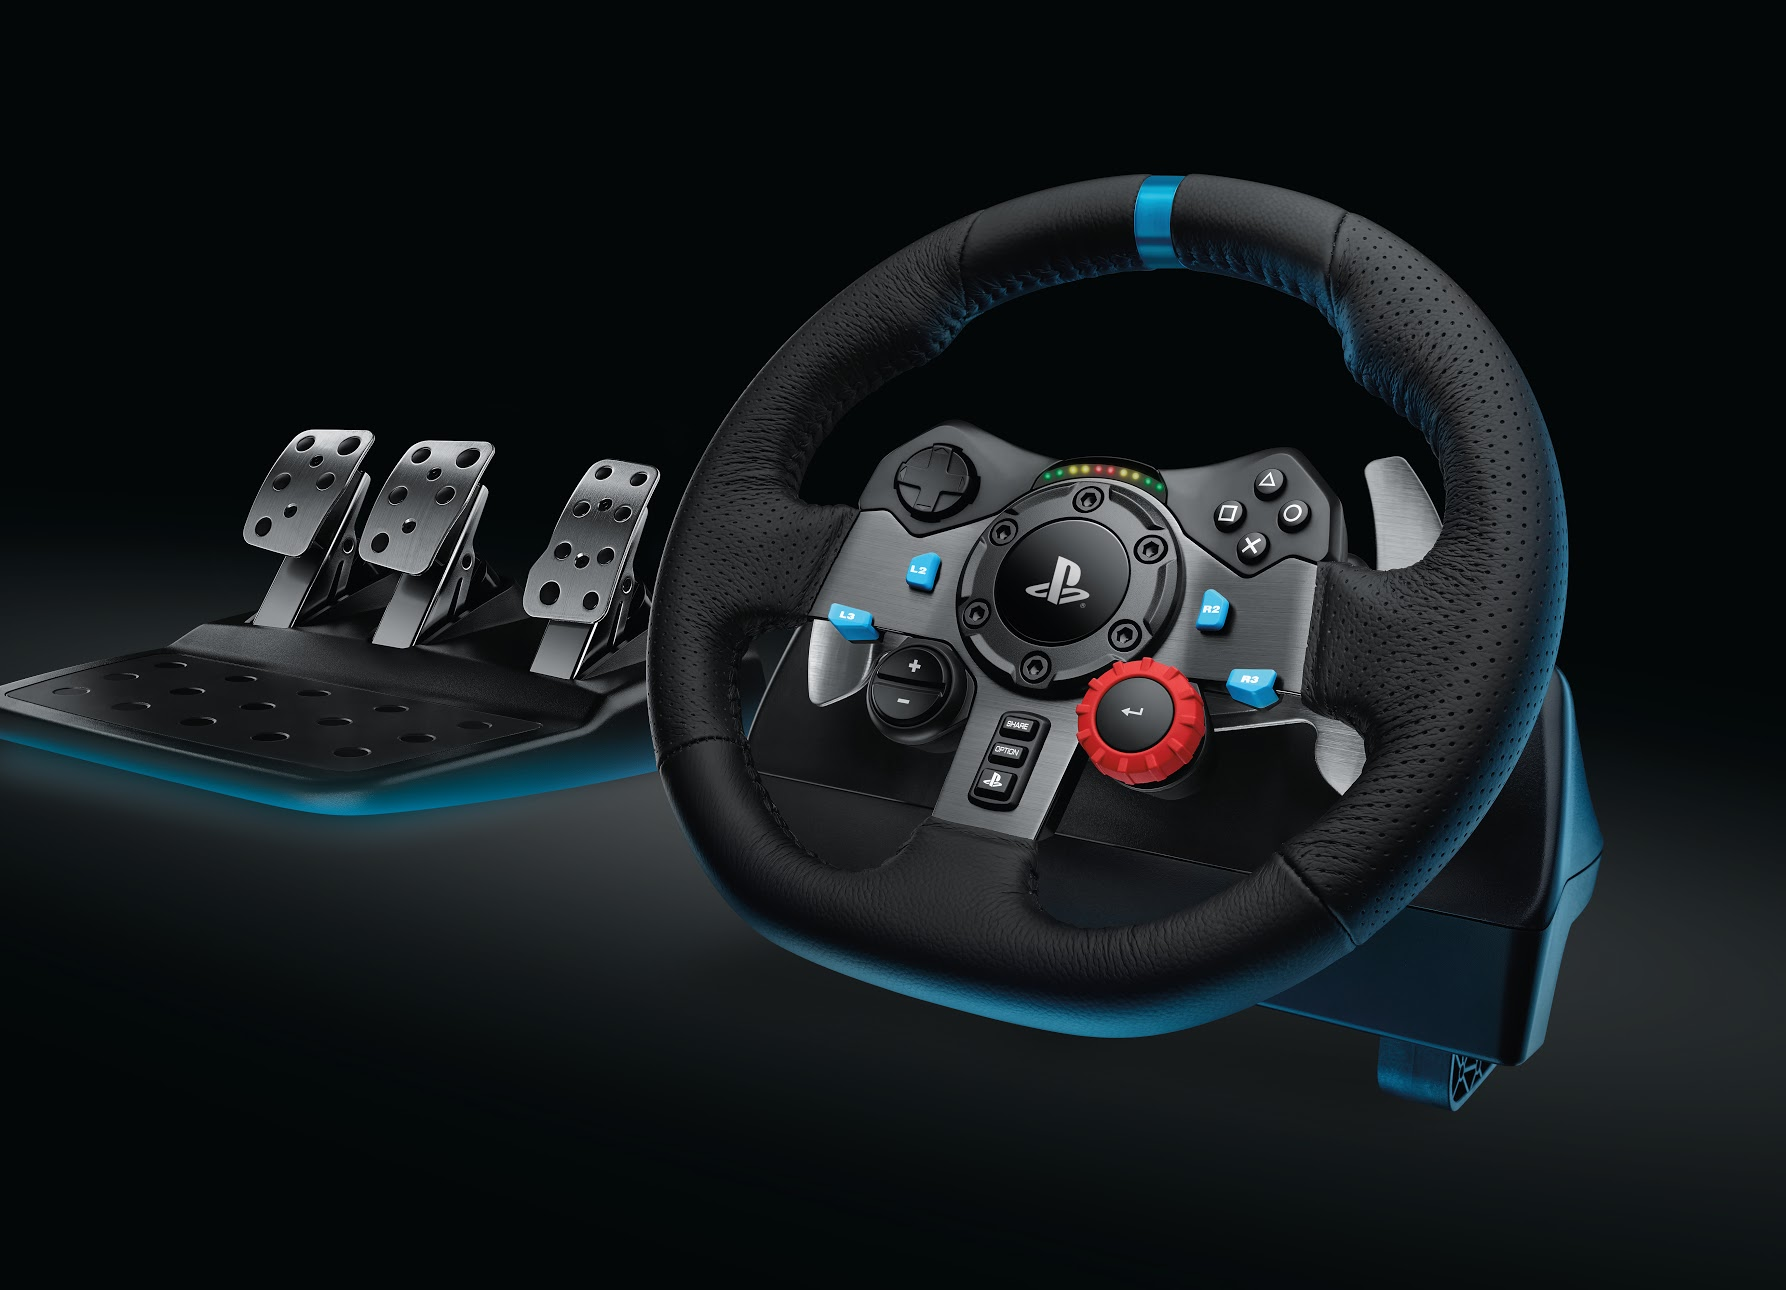 08a4fd14a3a But here's the twist: another wheel has been announced. Not to leave anyone  out, a separate model called the G920 will also be released for Xbox One and  PC ...